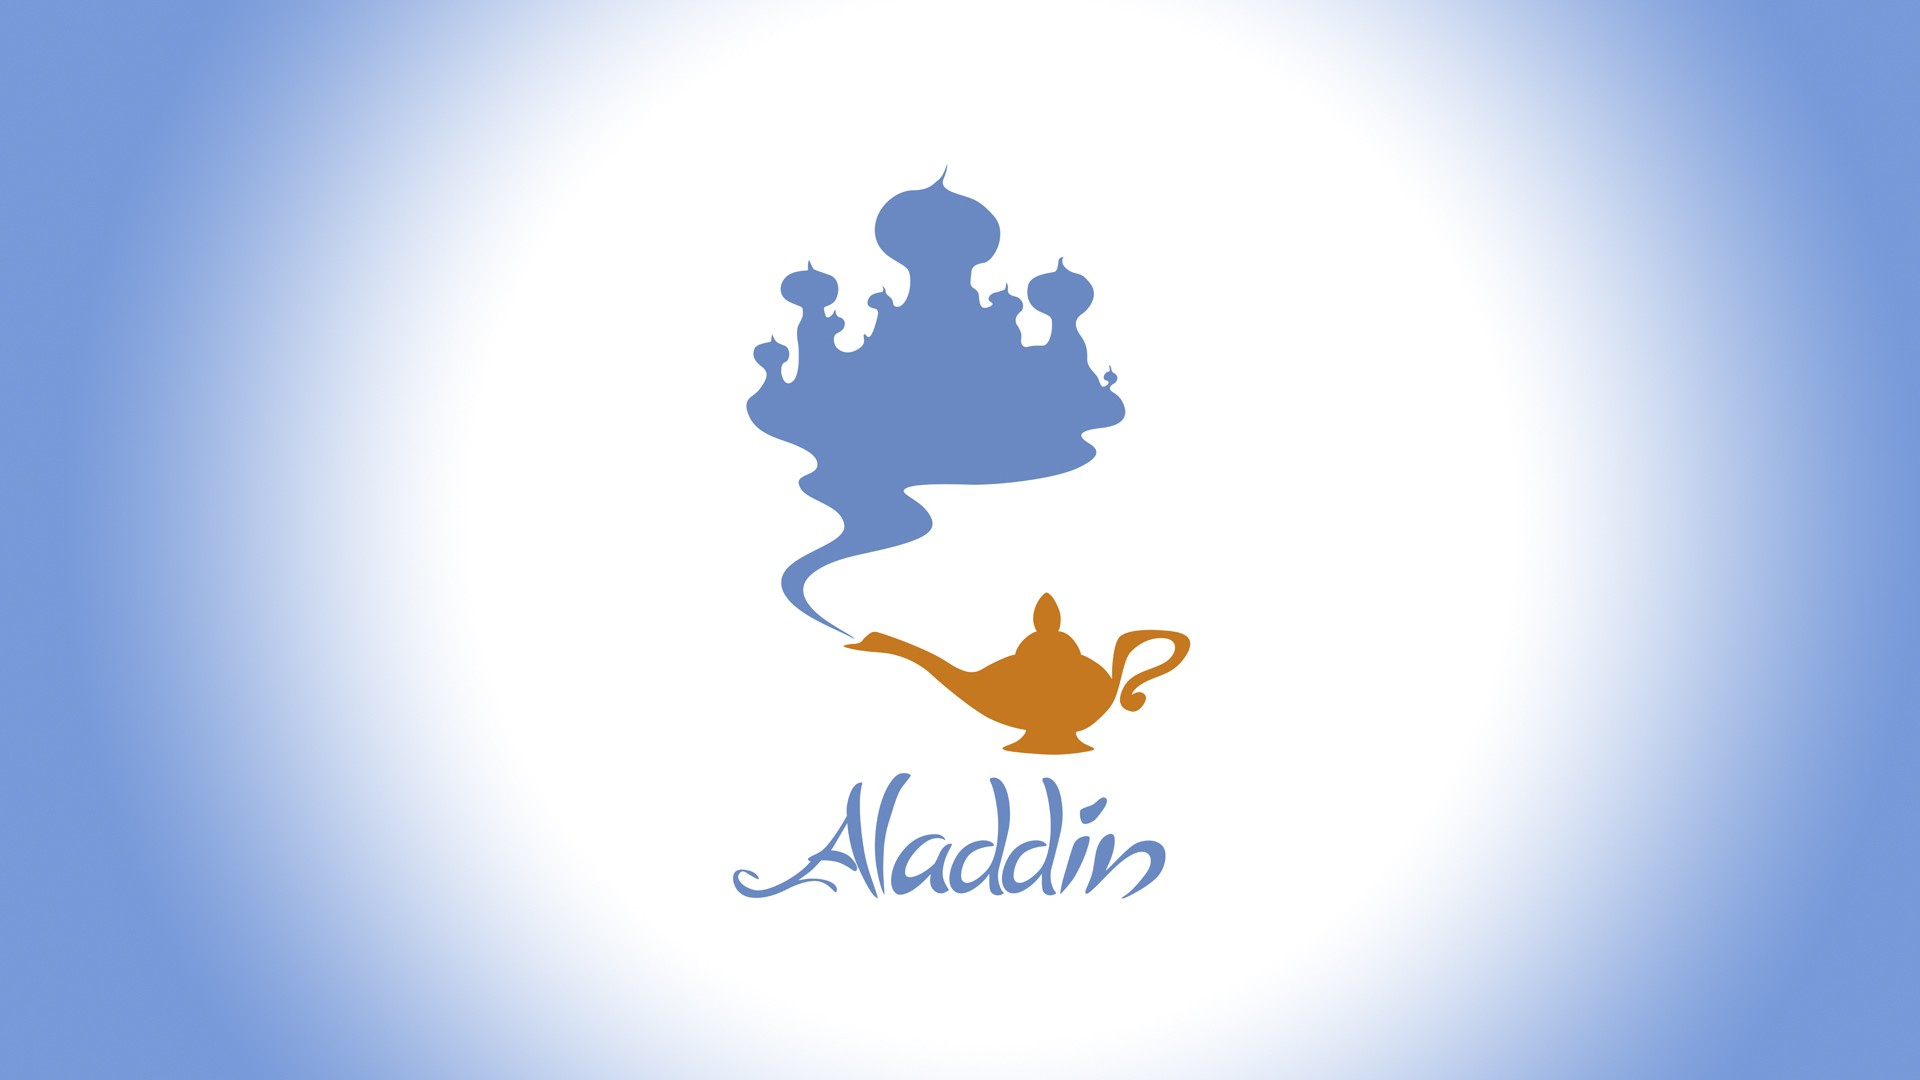 simple aladdin desktop wallpaper 51533